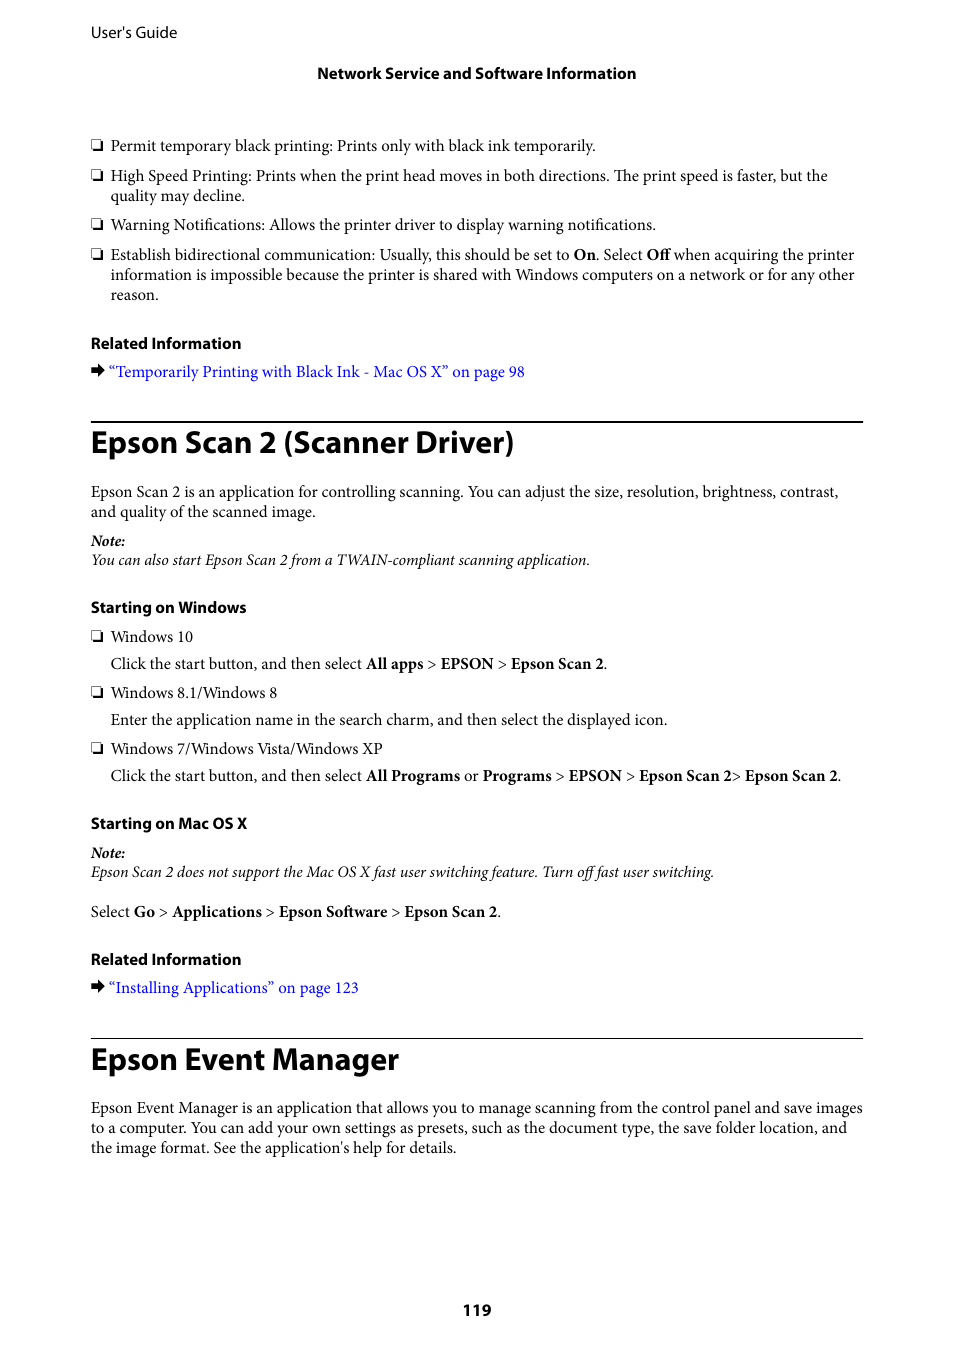 Epson scan 2 (scanner driver), Epson event manager | Epson